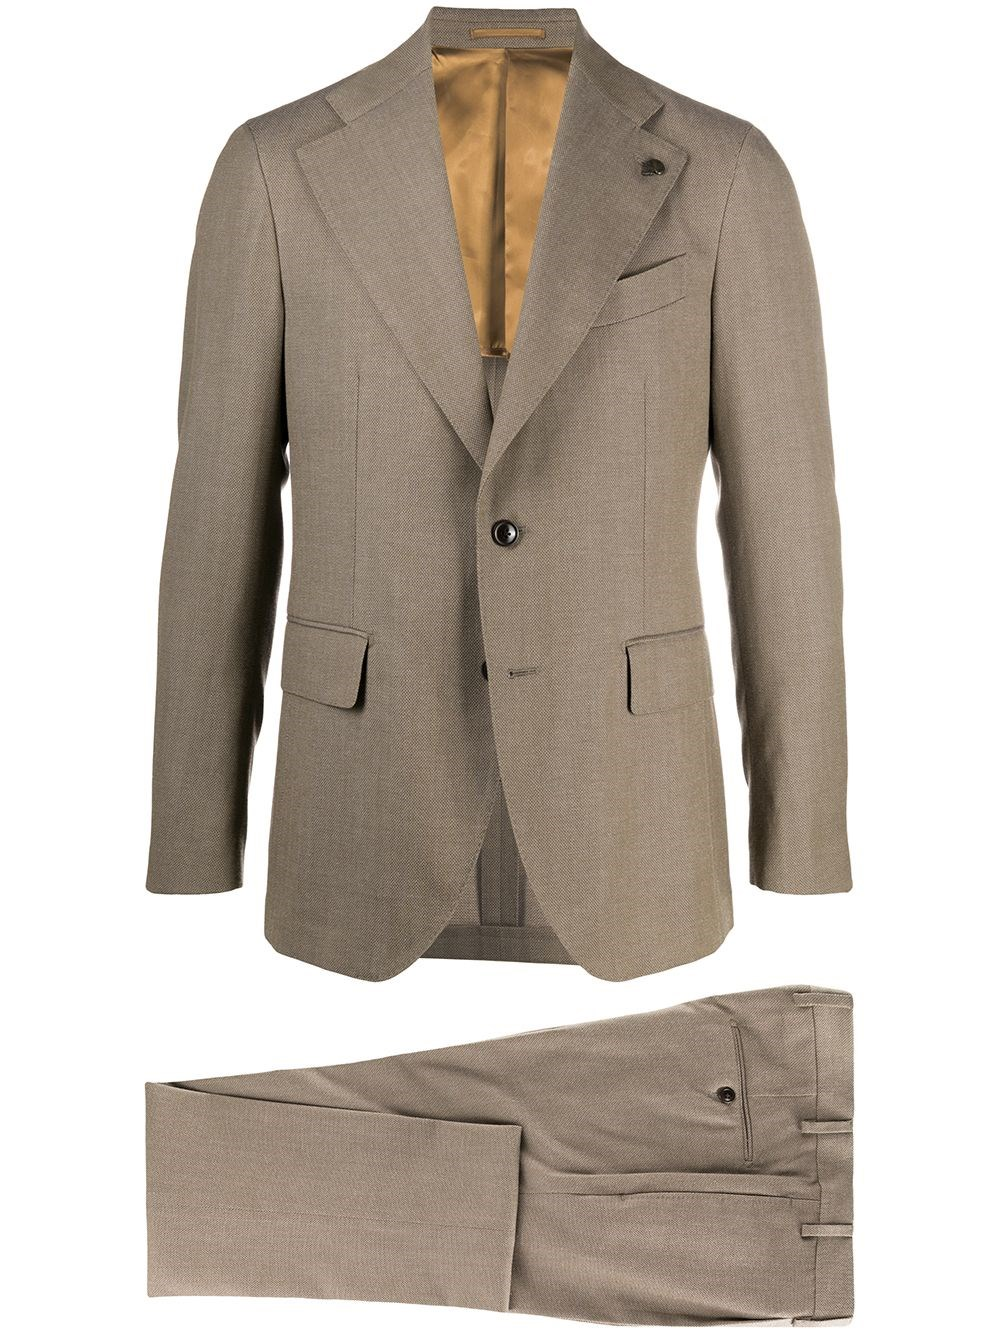 GABRIELE PASINI Tailored Two-Piece Suit